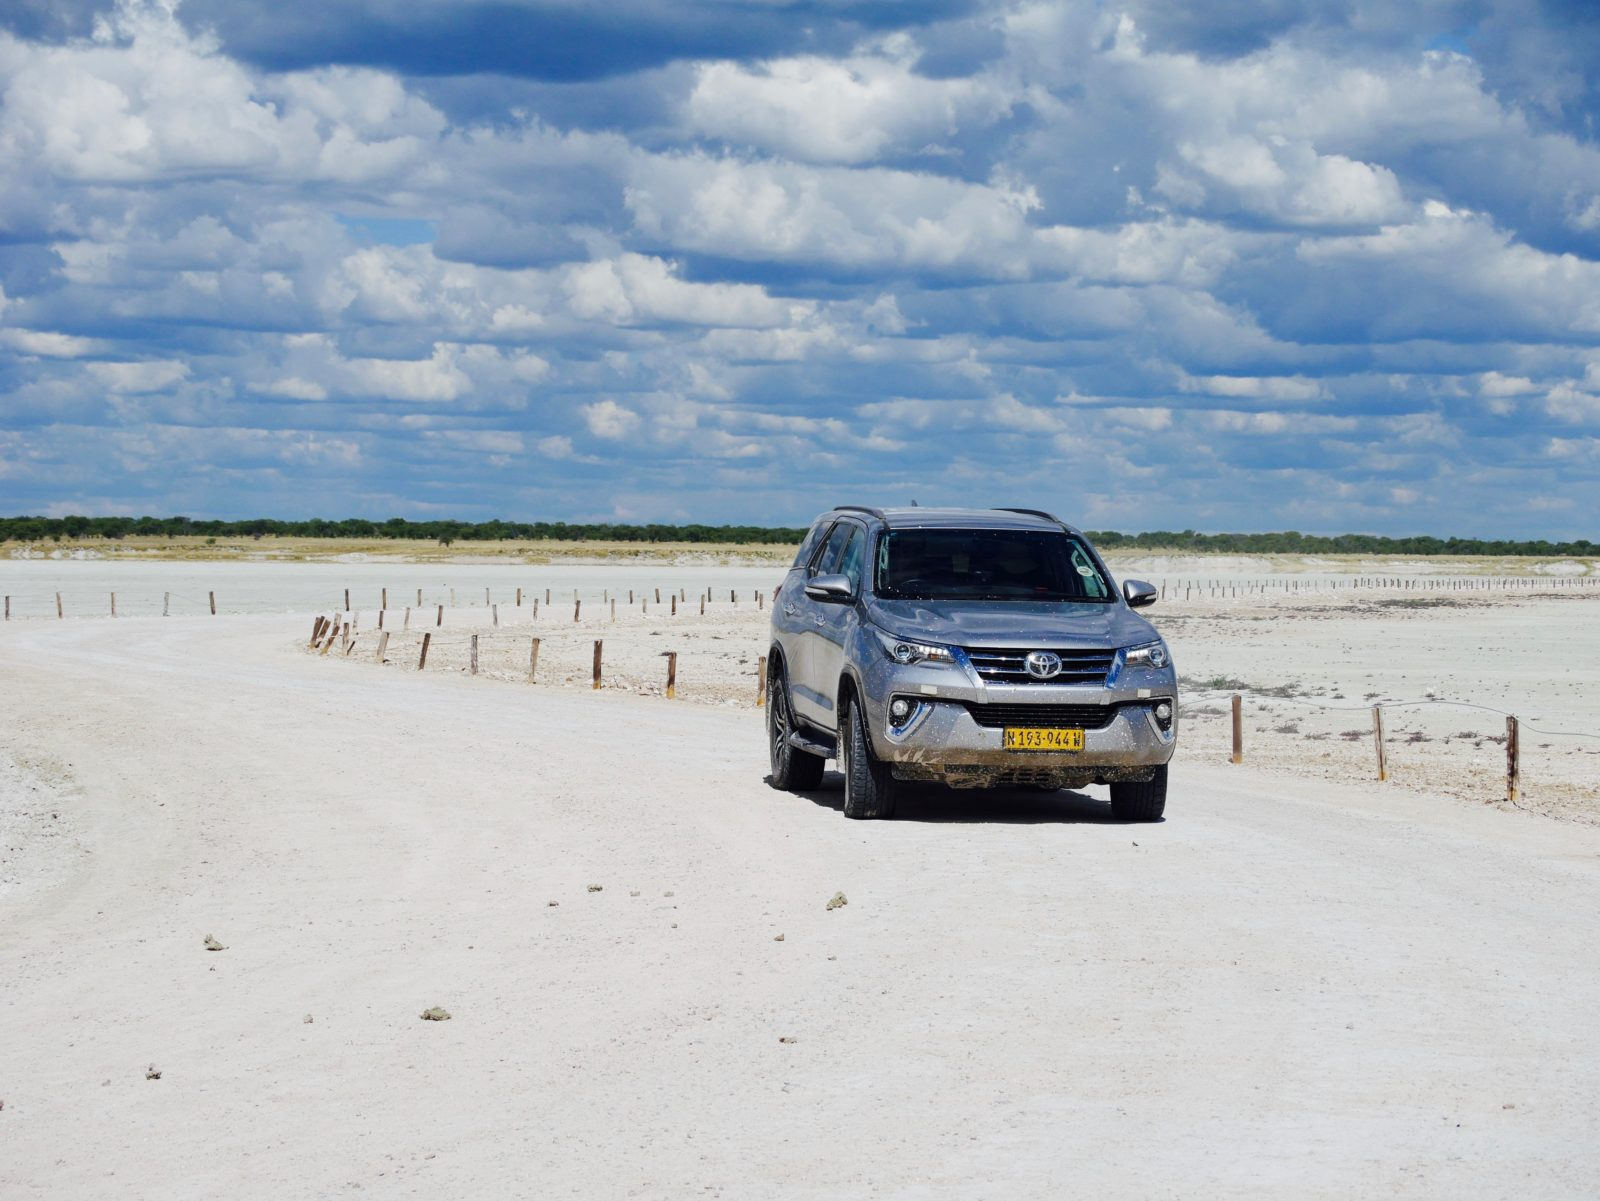 Namibia Rundreise Etosha Nationalpark Safari